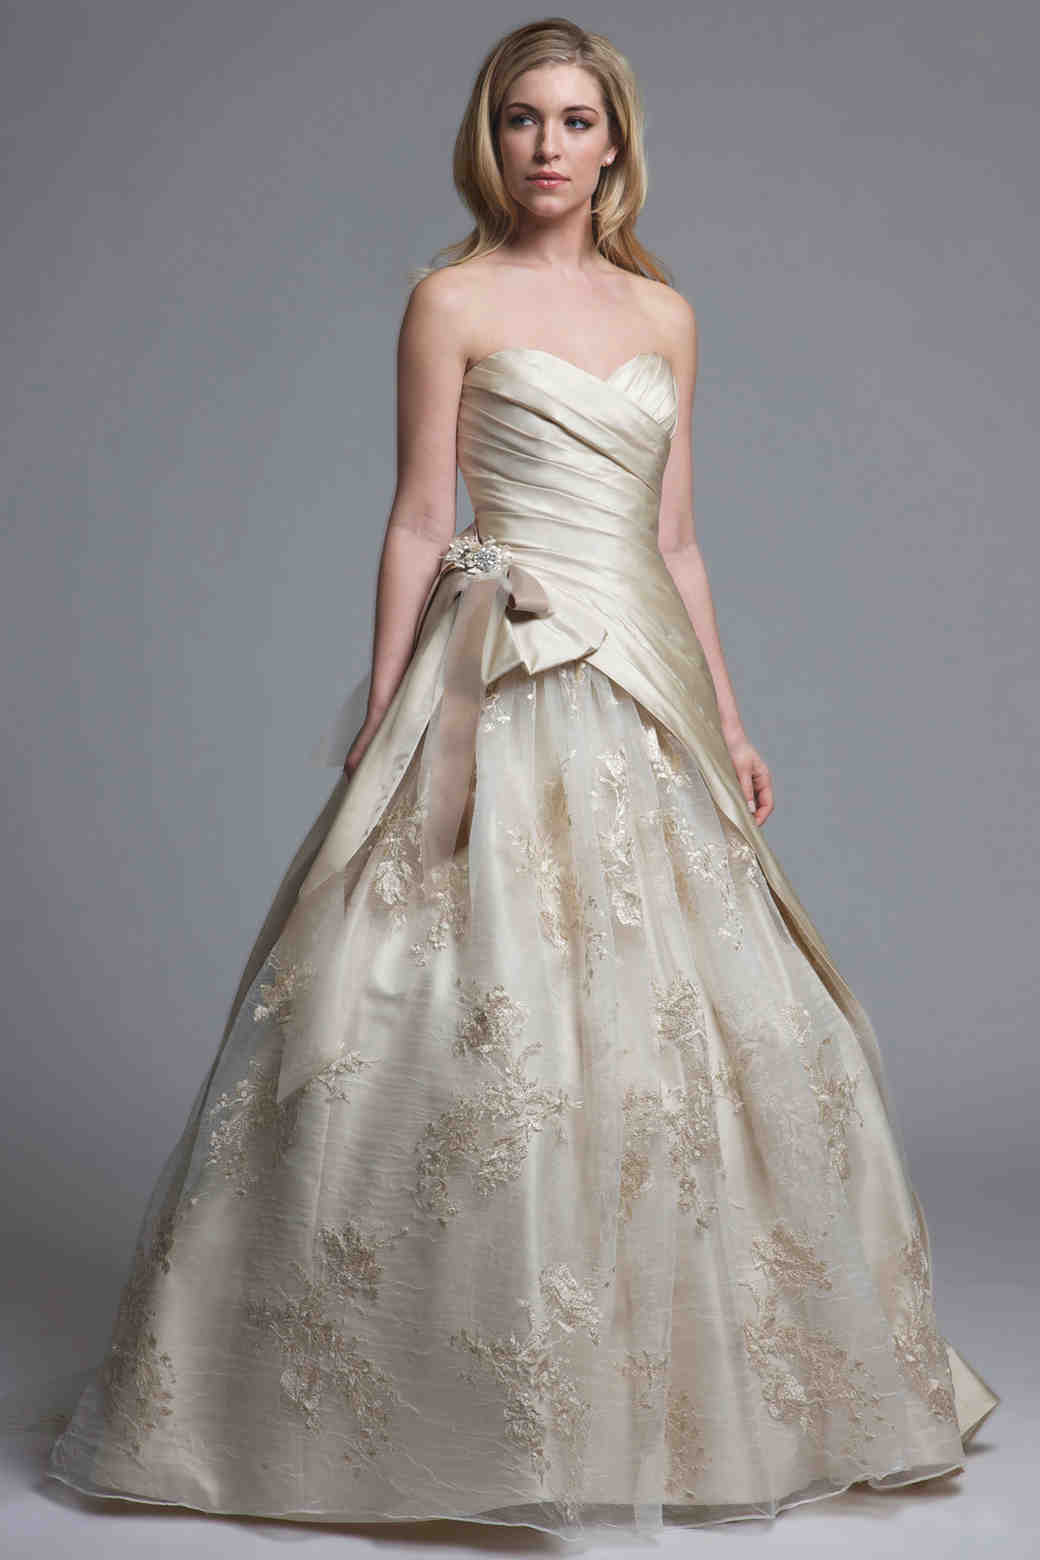 beach wedding dresses beachy wedding dress Ball Gown Wedding Dresses from Spring Bridal Fashion Week